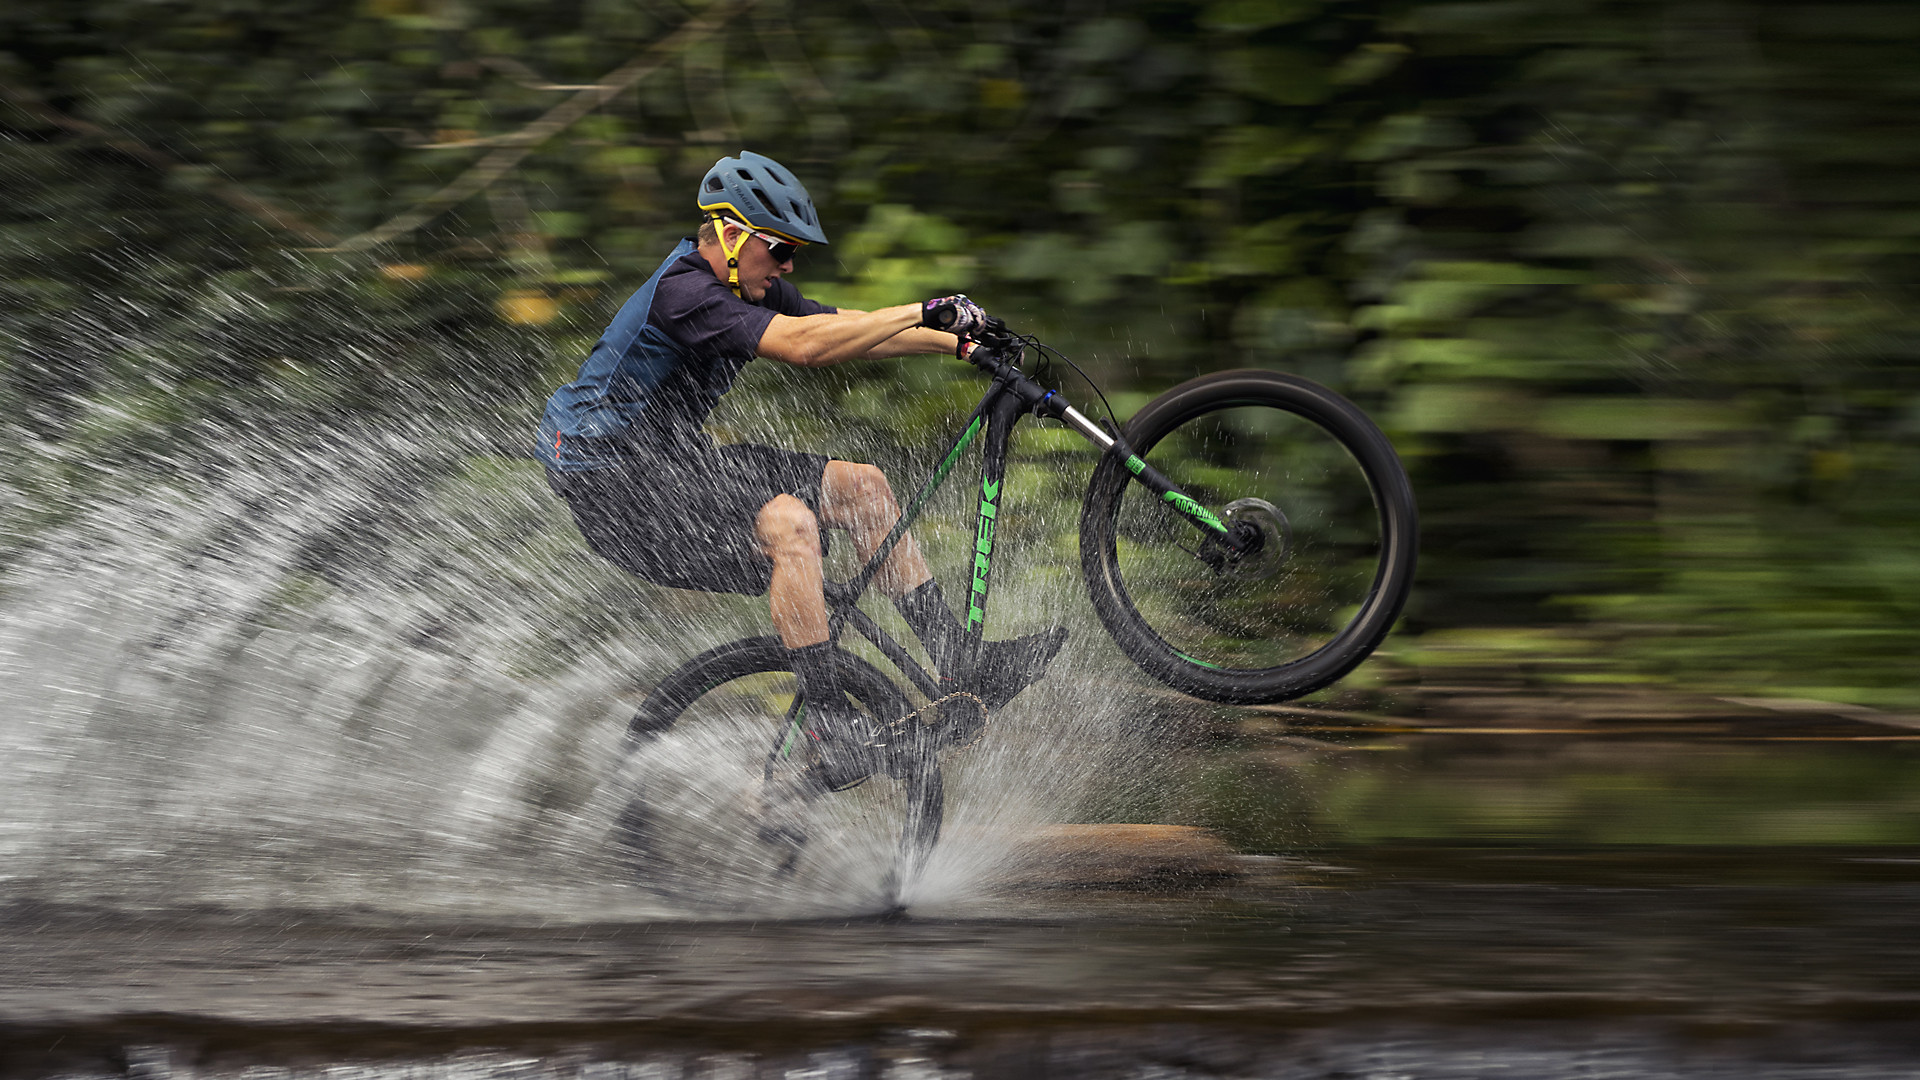 Trek Bikes - The world's best bikes and cycling gear | Trek